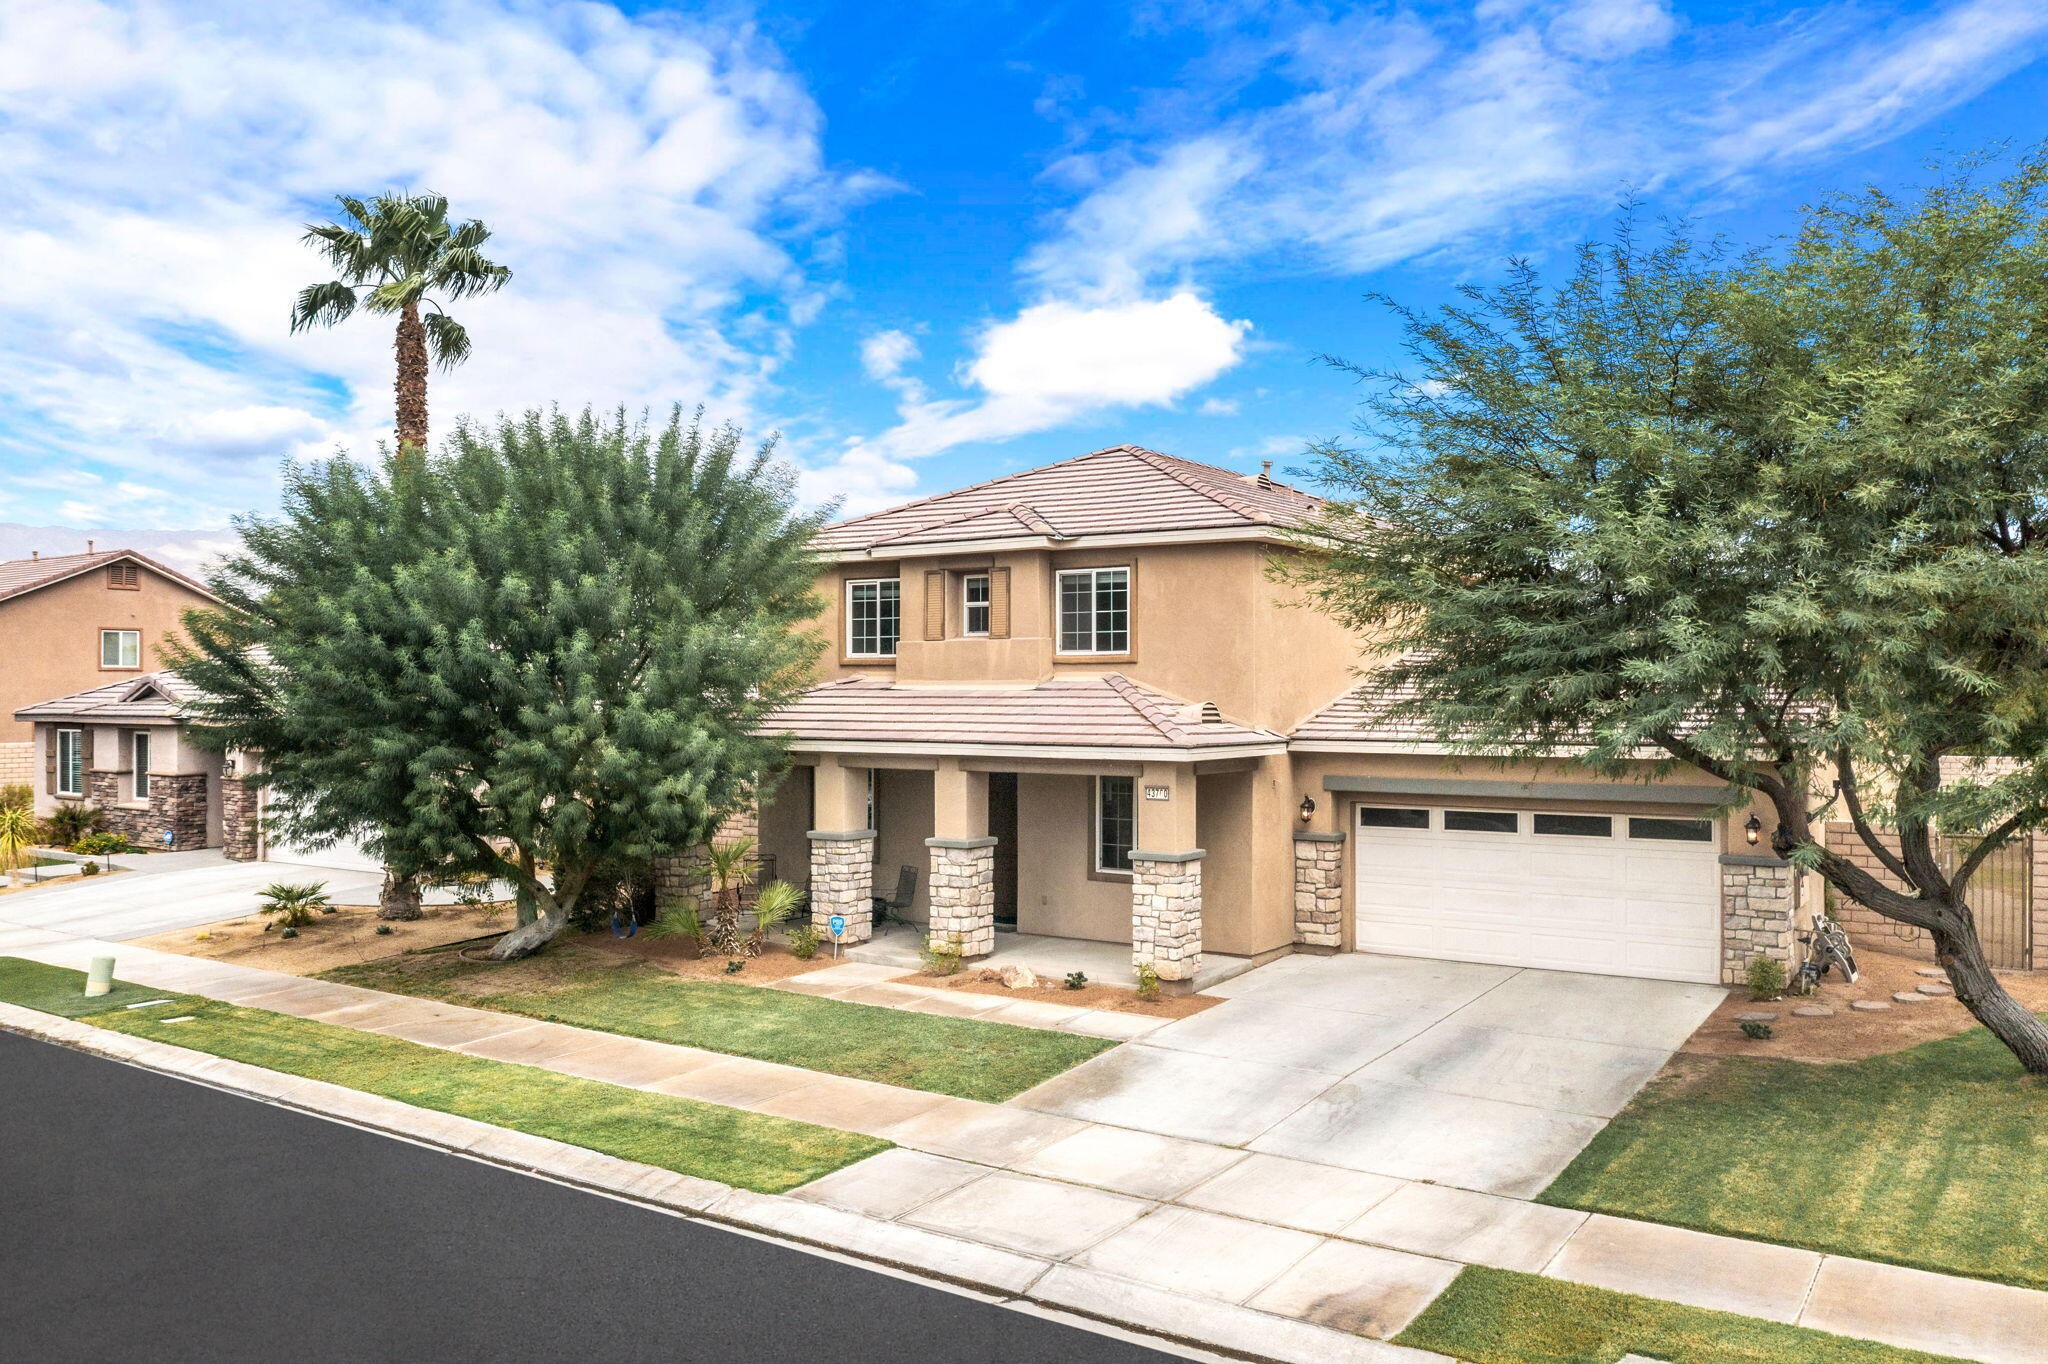 Photo of 43760 Campo Pl Place, Indio, CA 92203